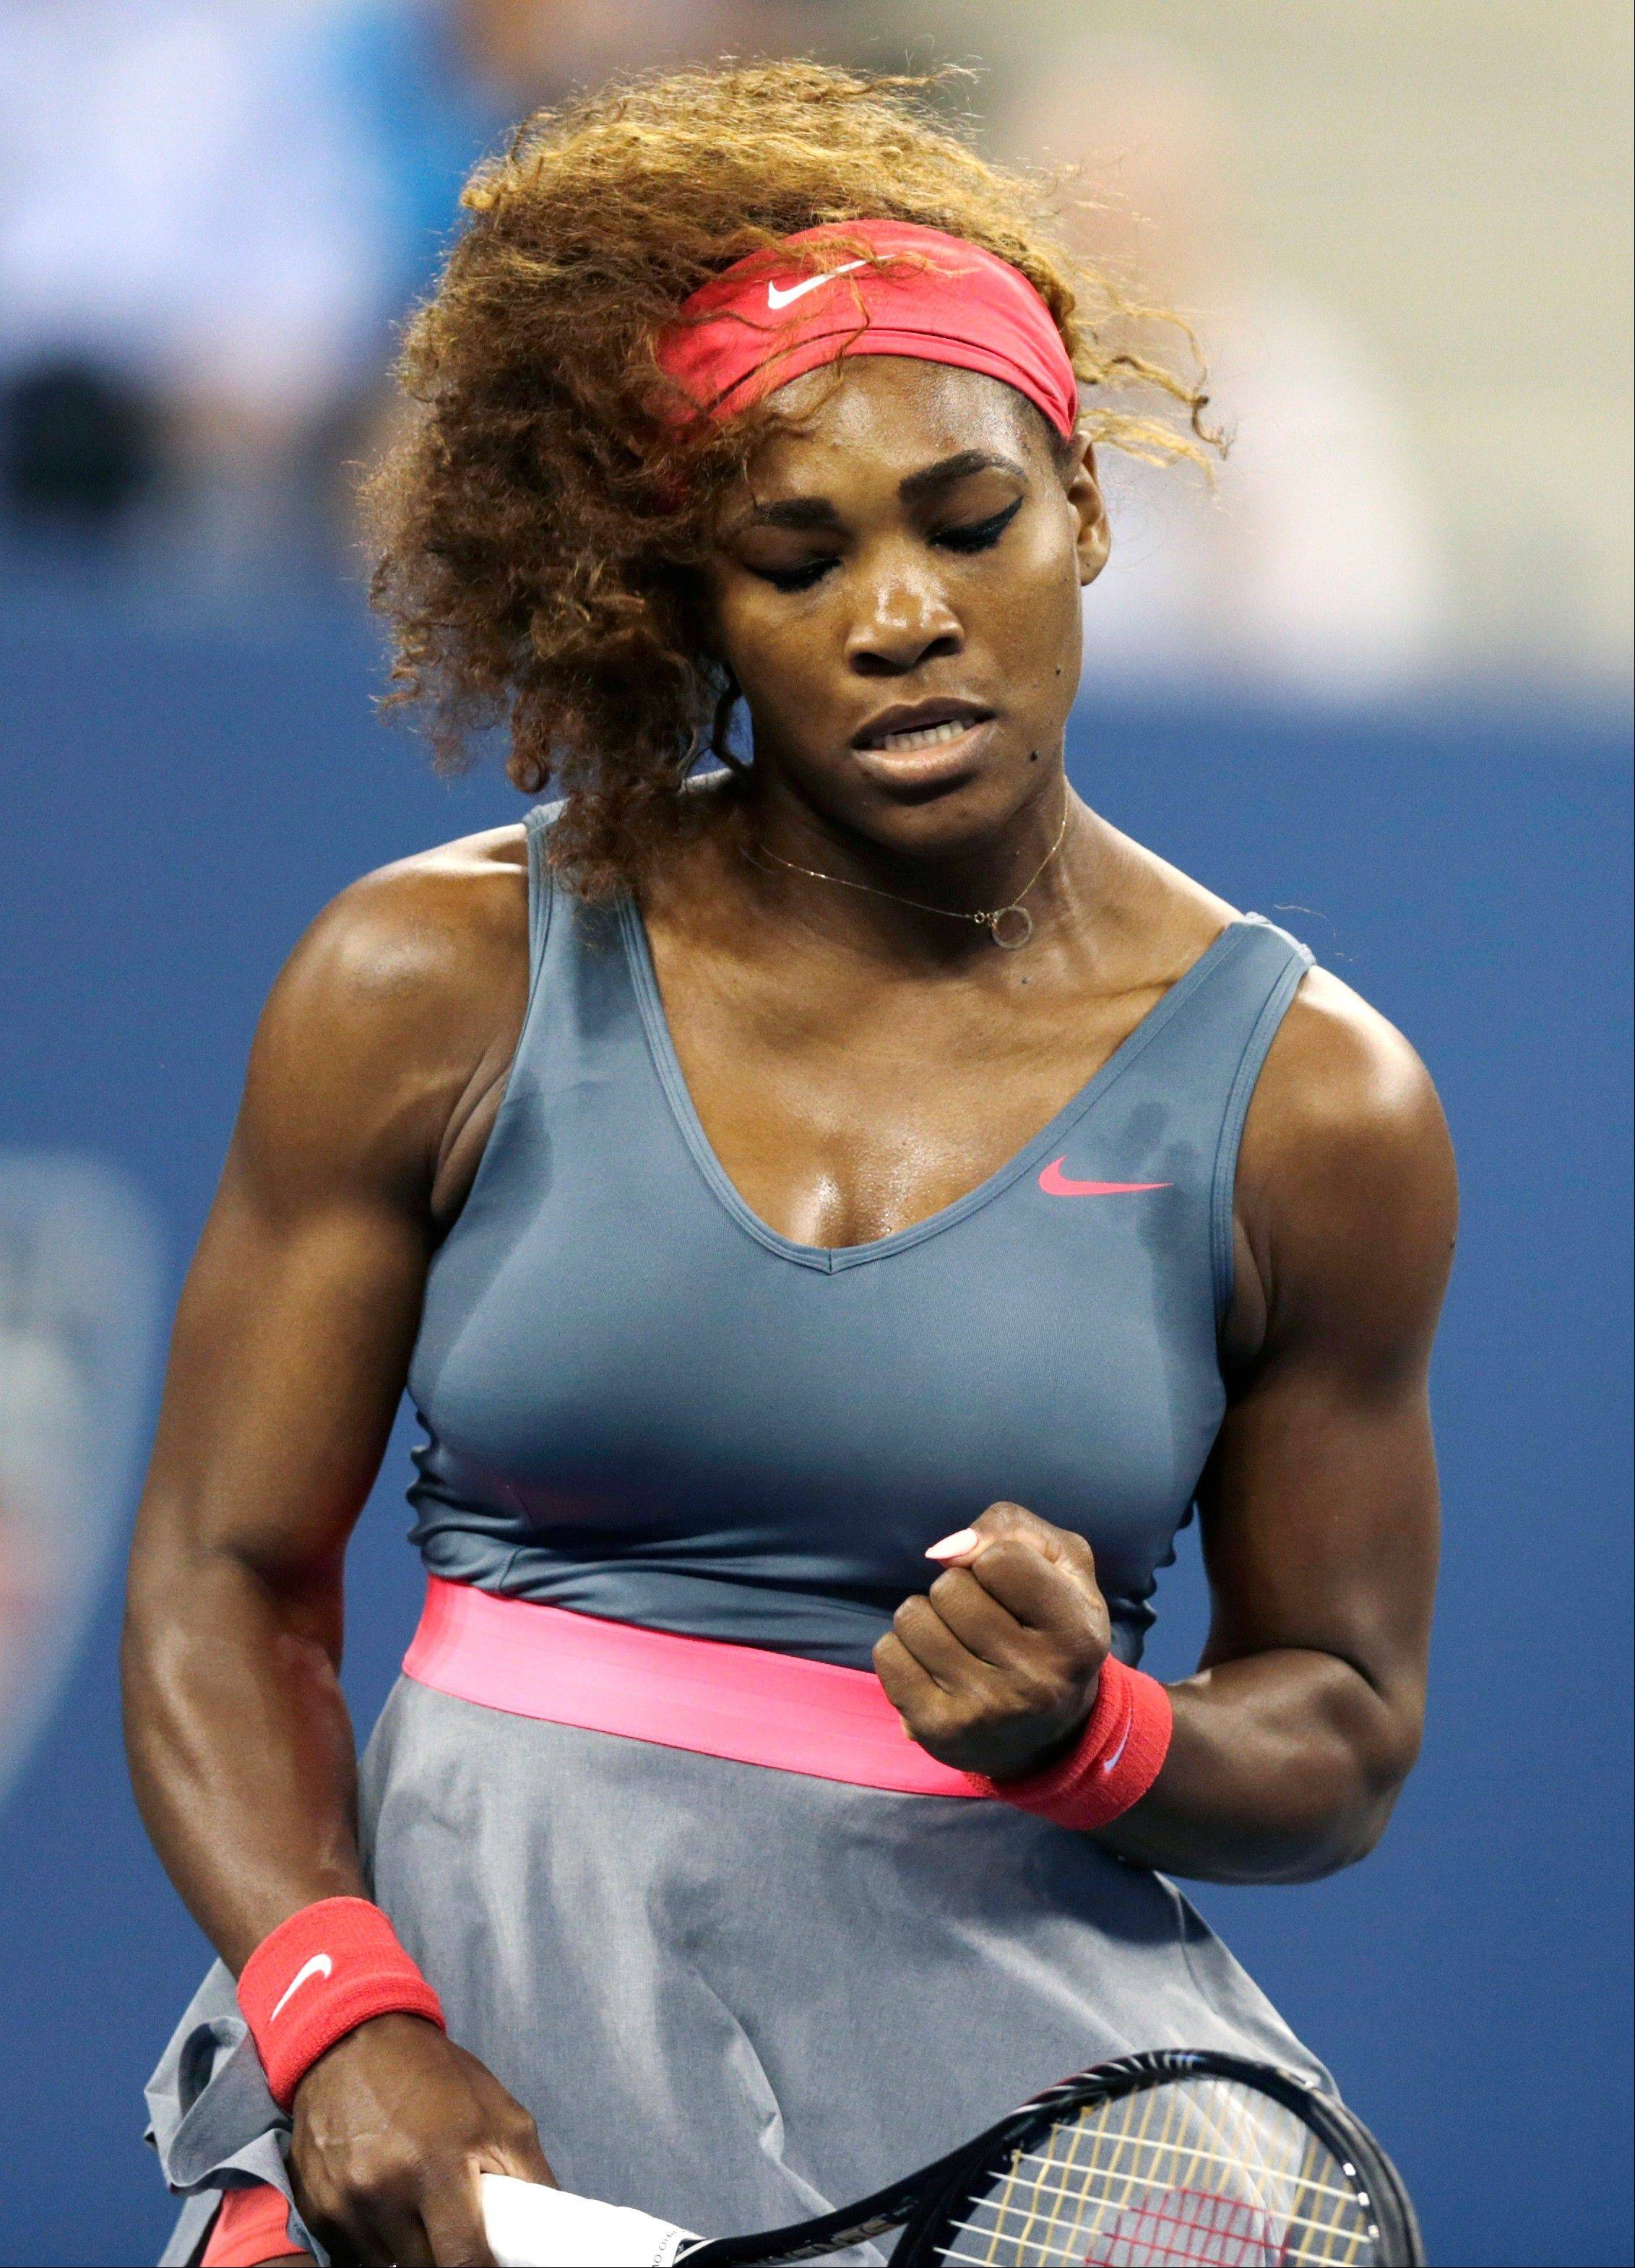 Serena Williams, of the United States, pumps her fist after winning a point against Carla Suarez Navarro, of Spain, during a quarterfinal of the U.S. Open tennis tournament, Tuesday, Sept. 3, 2013, in New York.